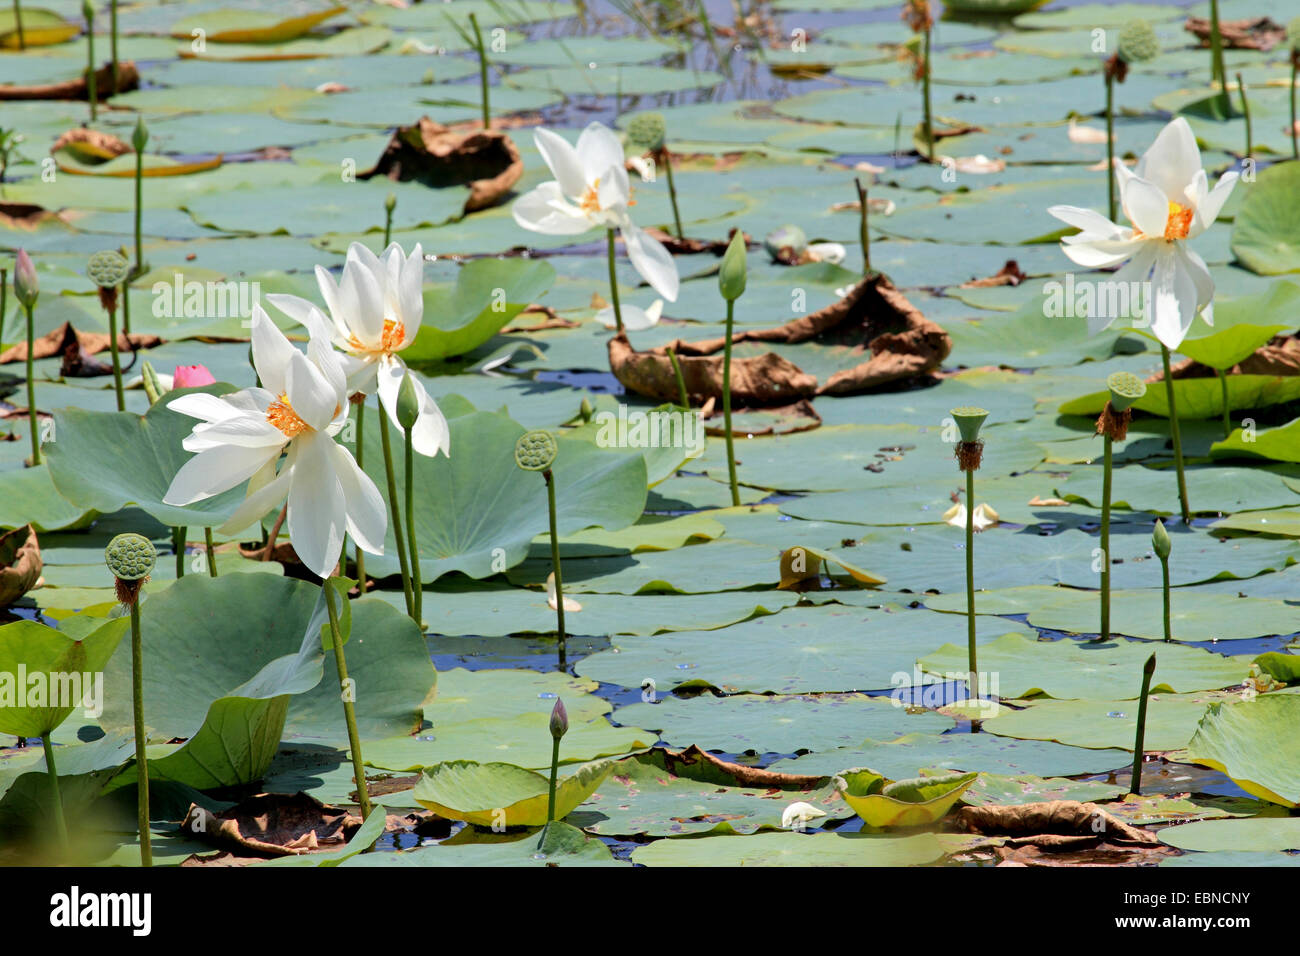 Lotus Flowers Sri Lanka Stock Photos Lotus Flowers Sri Lanka Stock